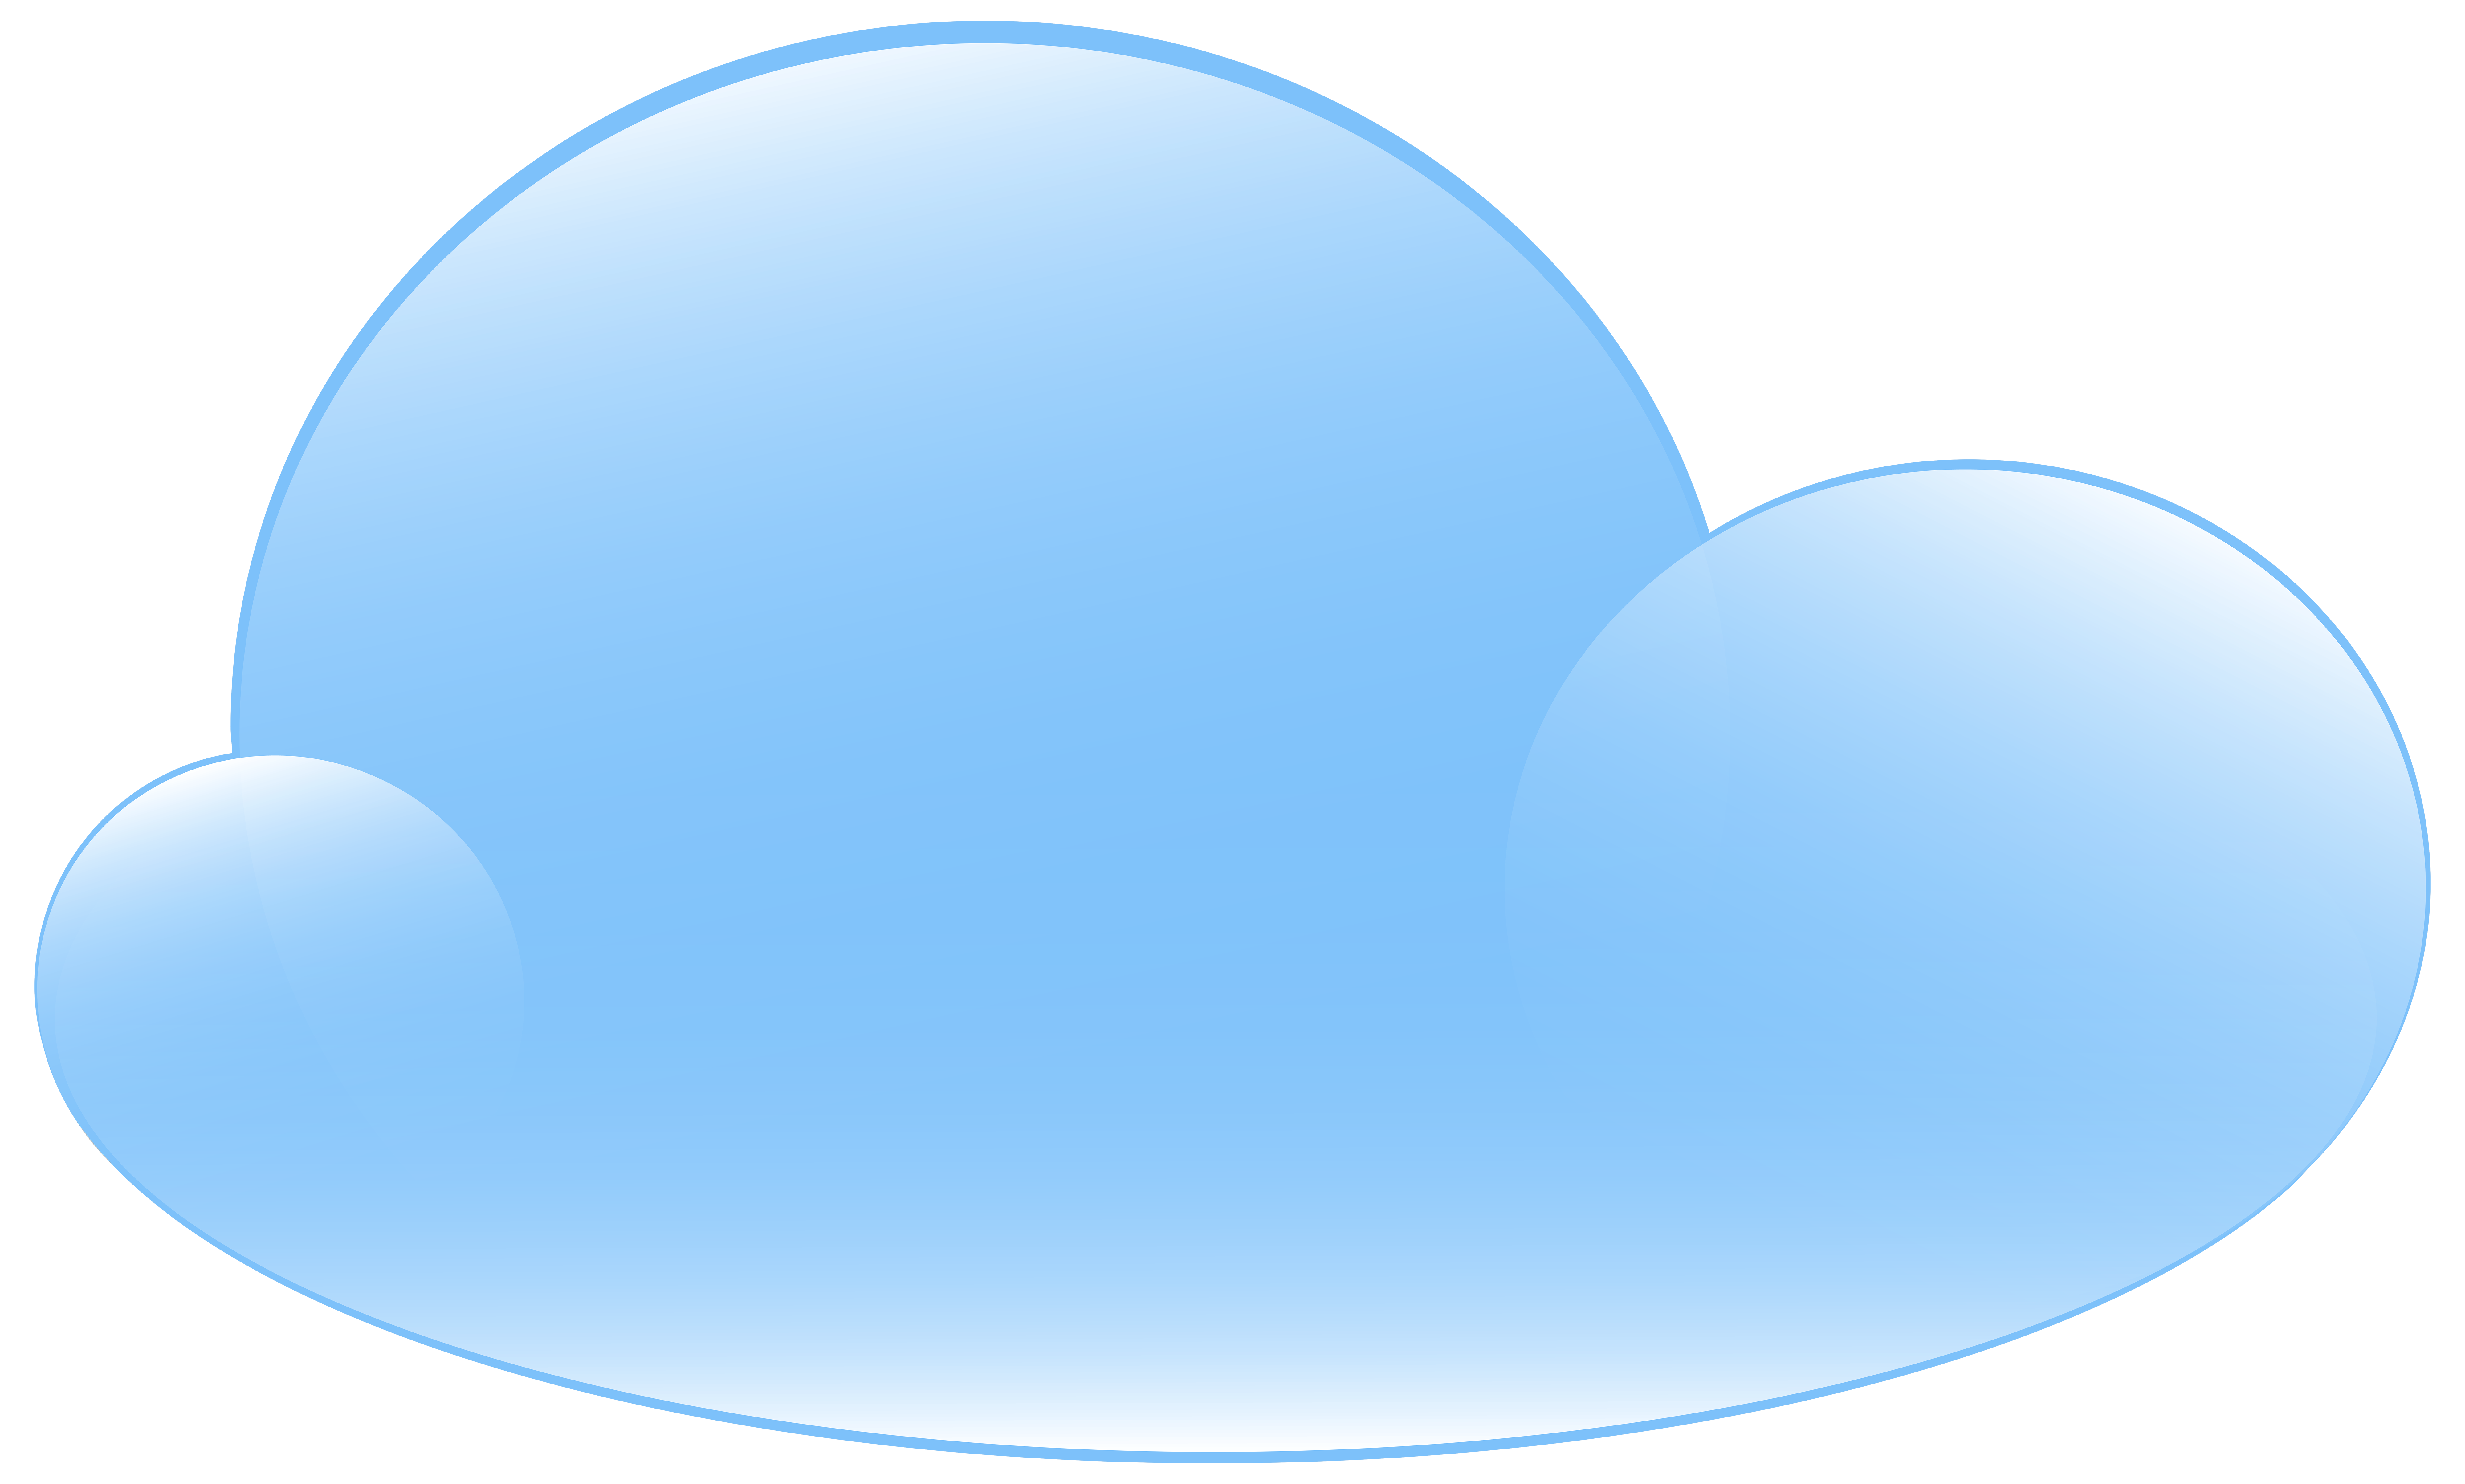 Clipart road sky. Cloud weather icon png